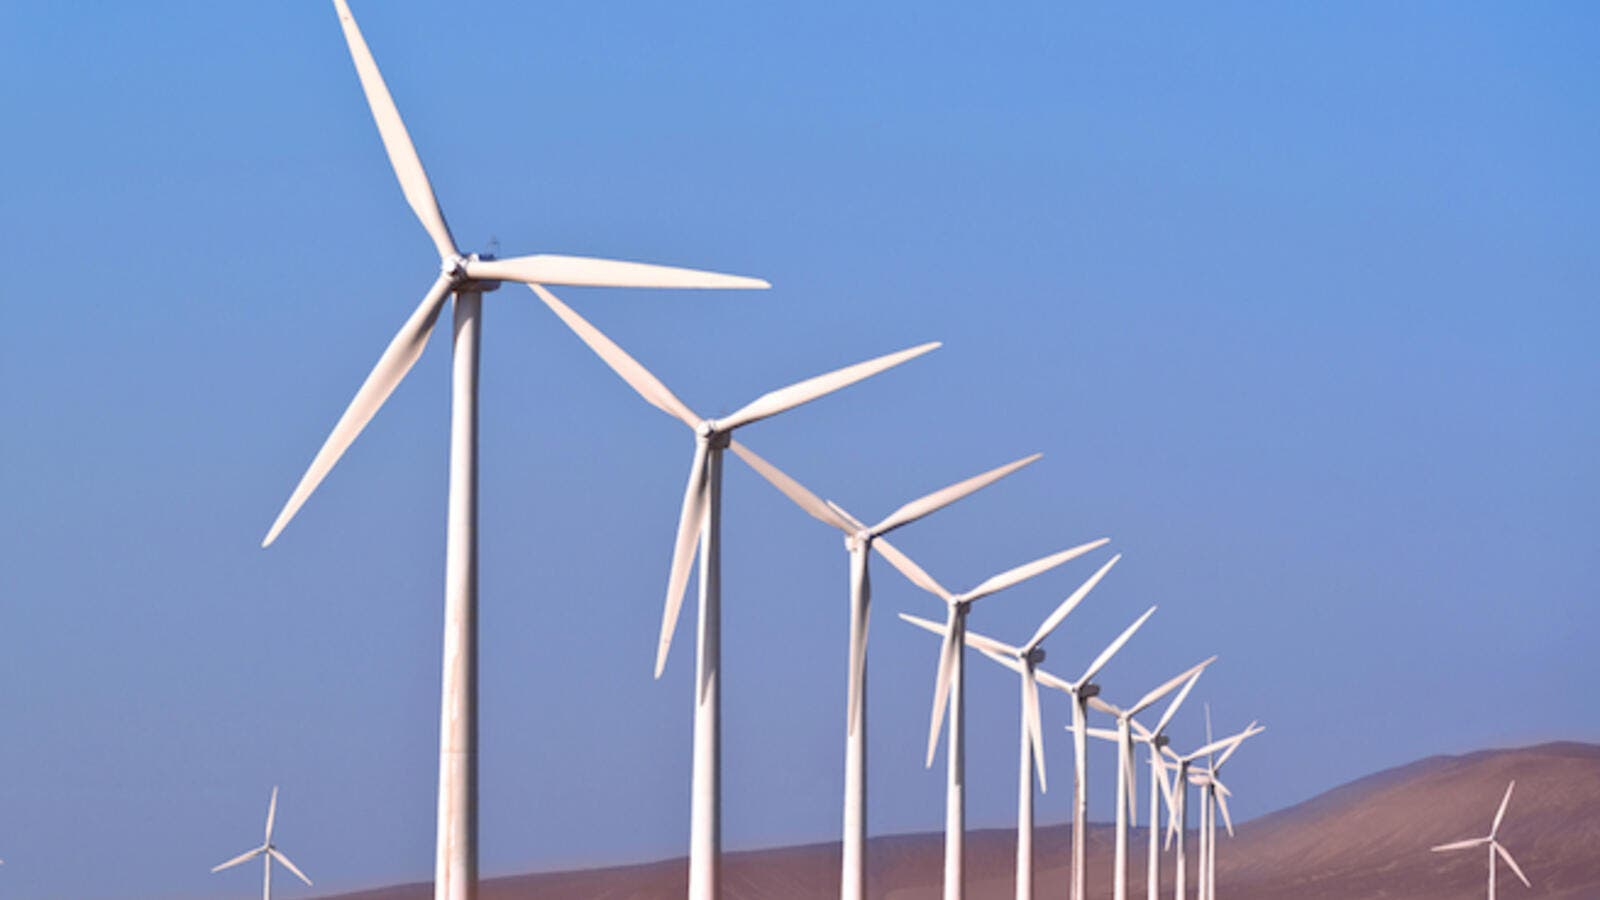 Siemens Gamesa will establish a transformer substation to move the energy produced from the first wind farm in Ras Ghareb, with a capacity of 220 kV to transfer 180 MW, and another station of 500 kV to transfer 650 MW. (Shutterstock)